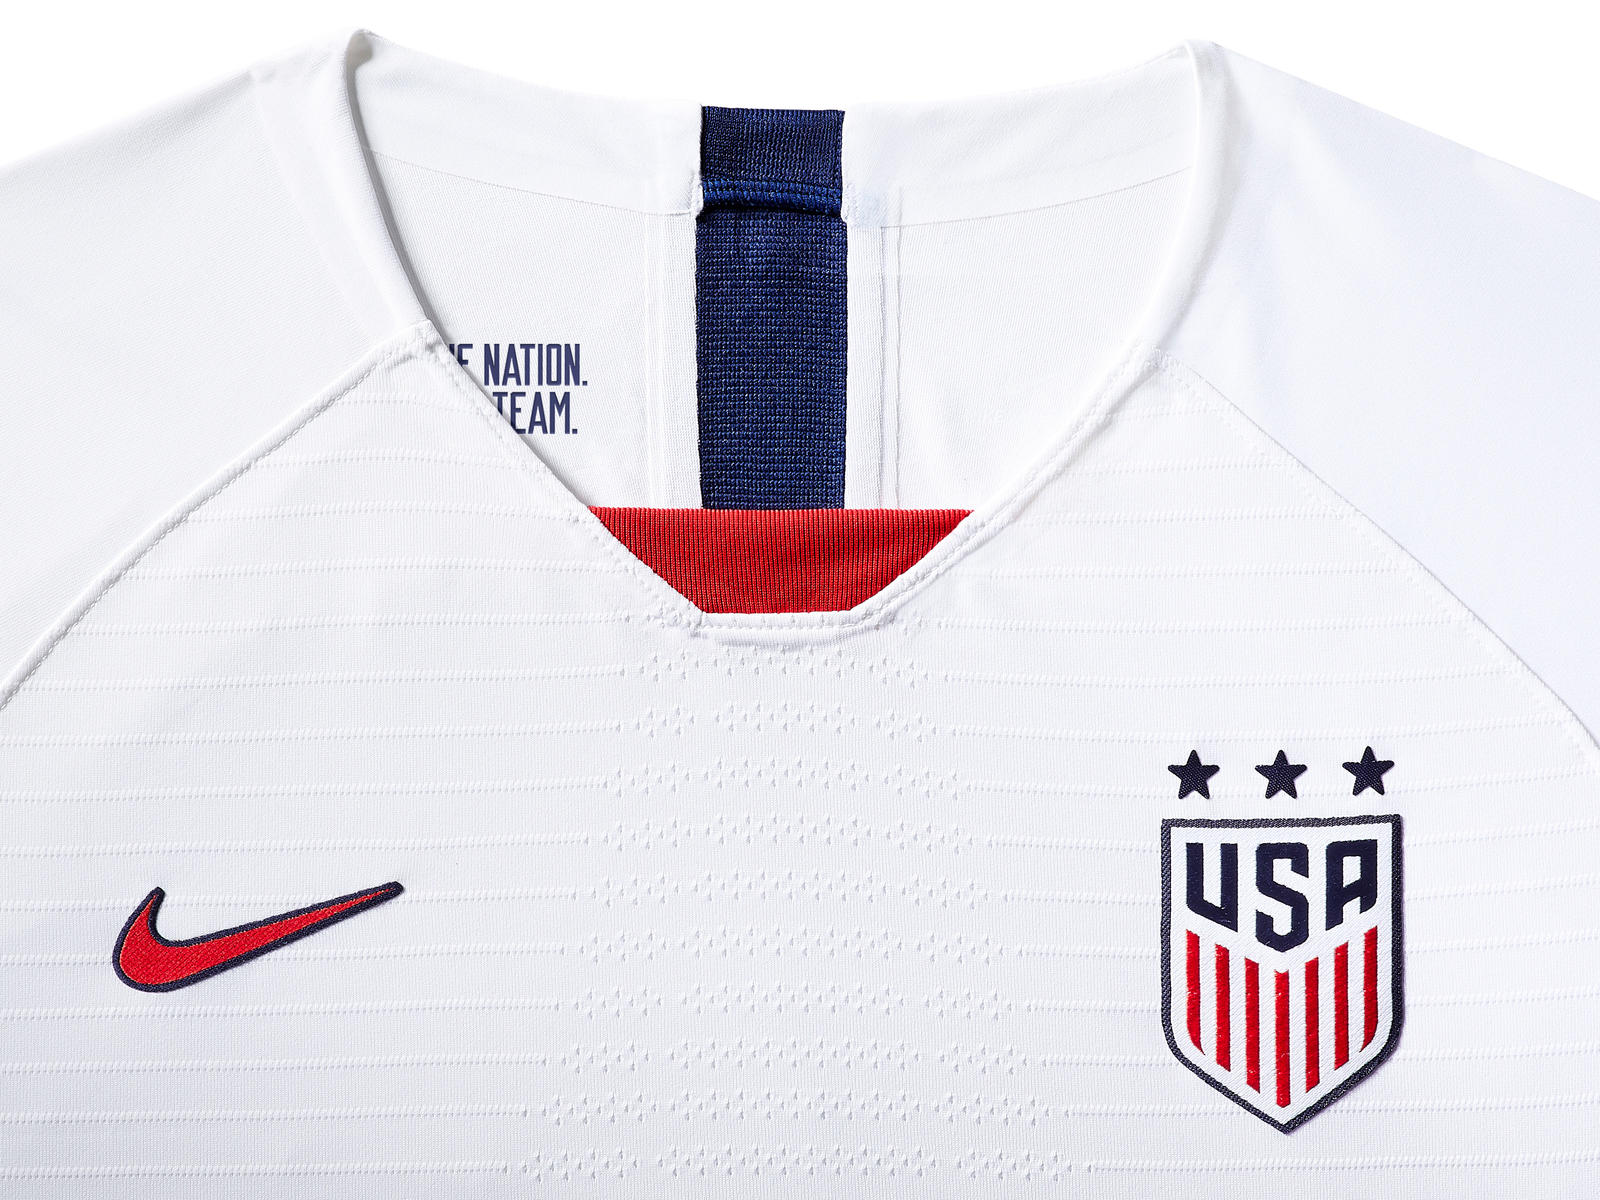 usa-national-team-kit-2019-laydown-003_85925.jpg